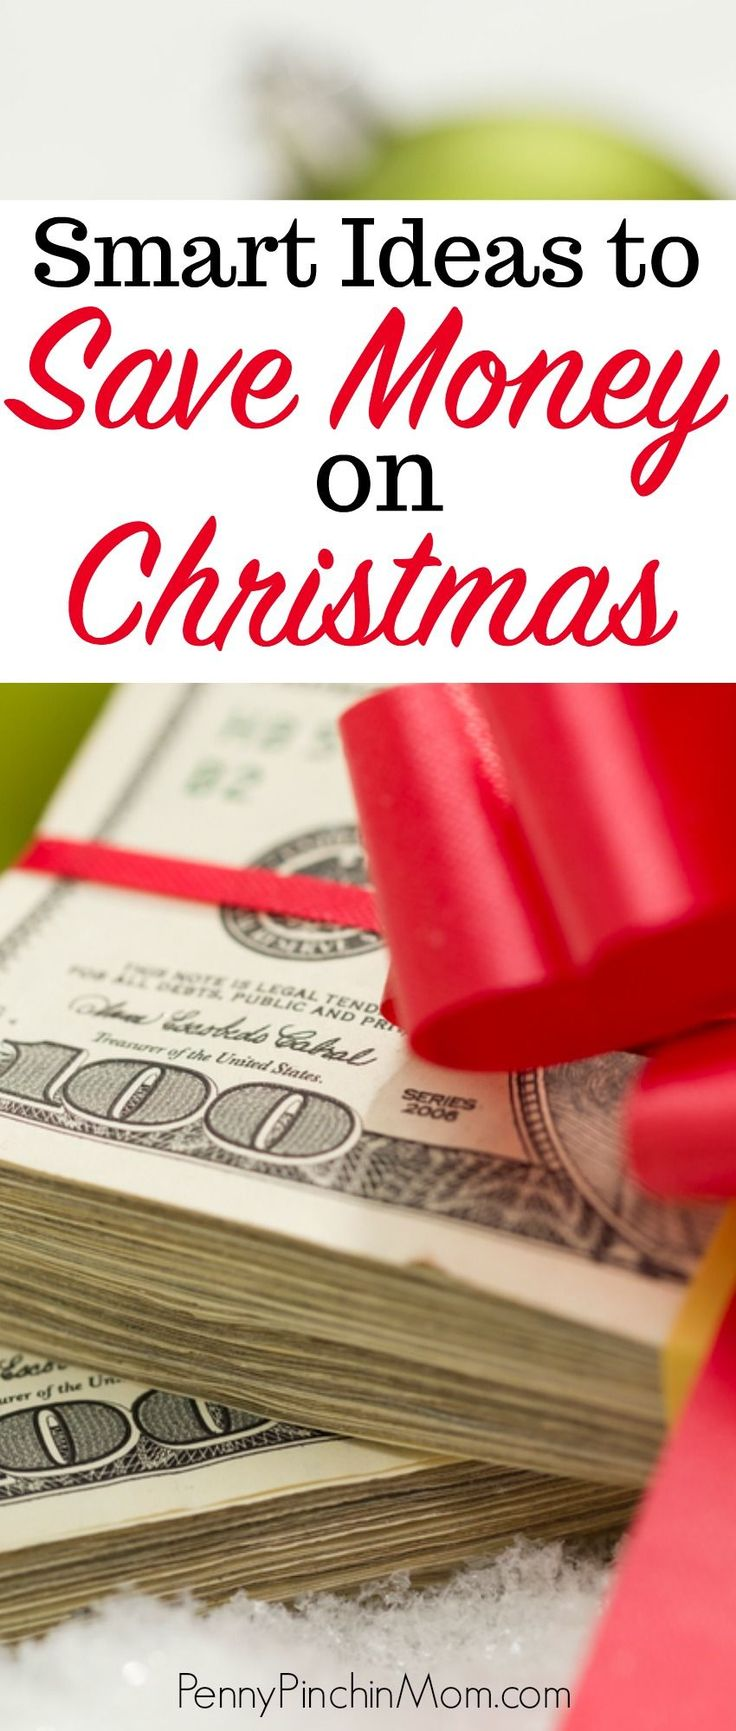 How you can save money on Christmas gifts and spending this year  Christmas budget | Saving money on Christmas | Christmas spending |   #Christmas #budget #savingmoneyonChristmasgifts #savingmoney #moneysavingtips